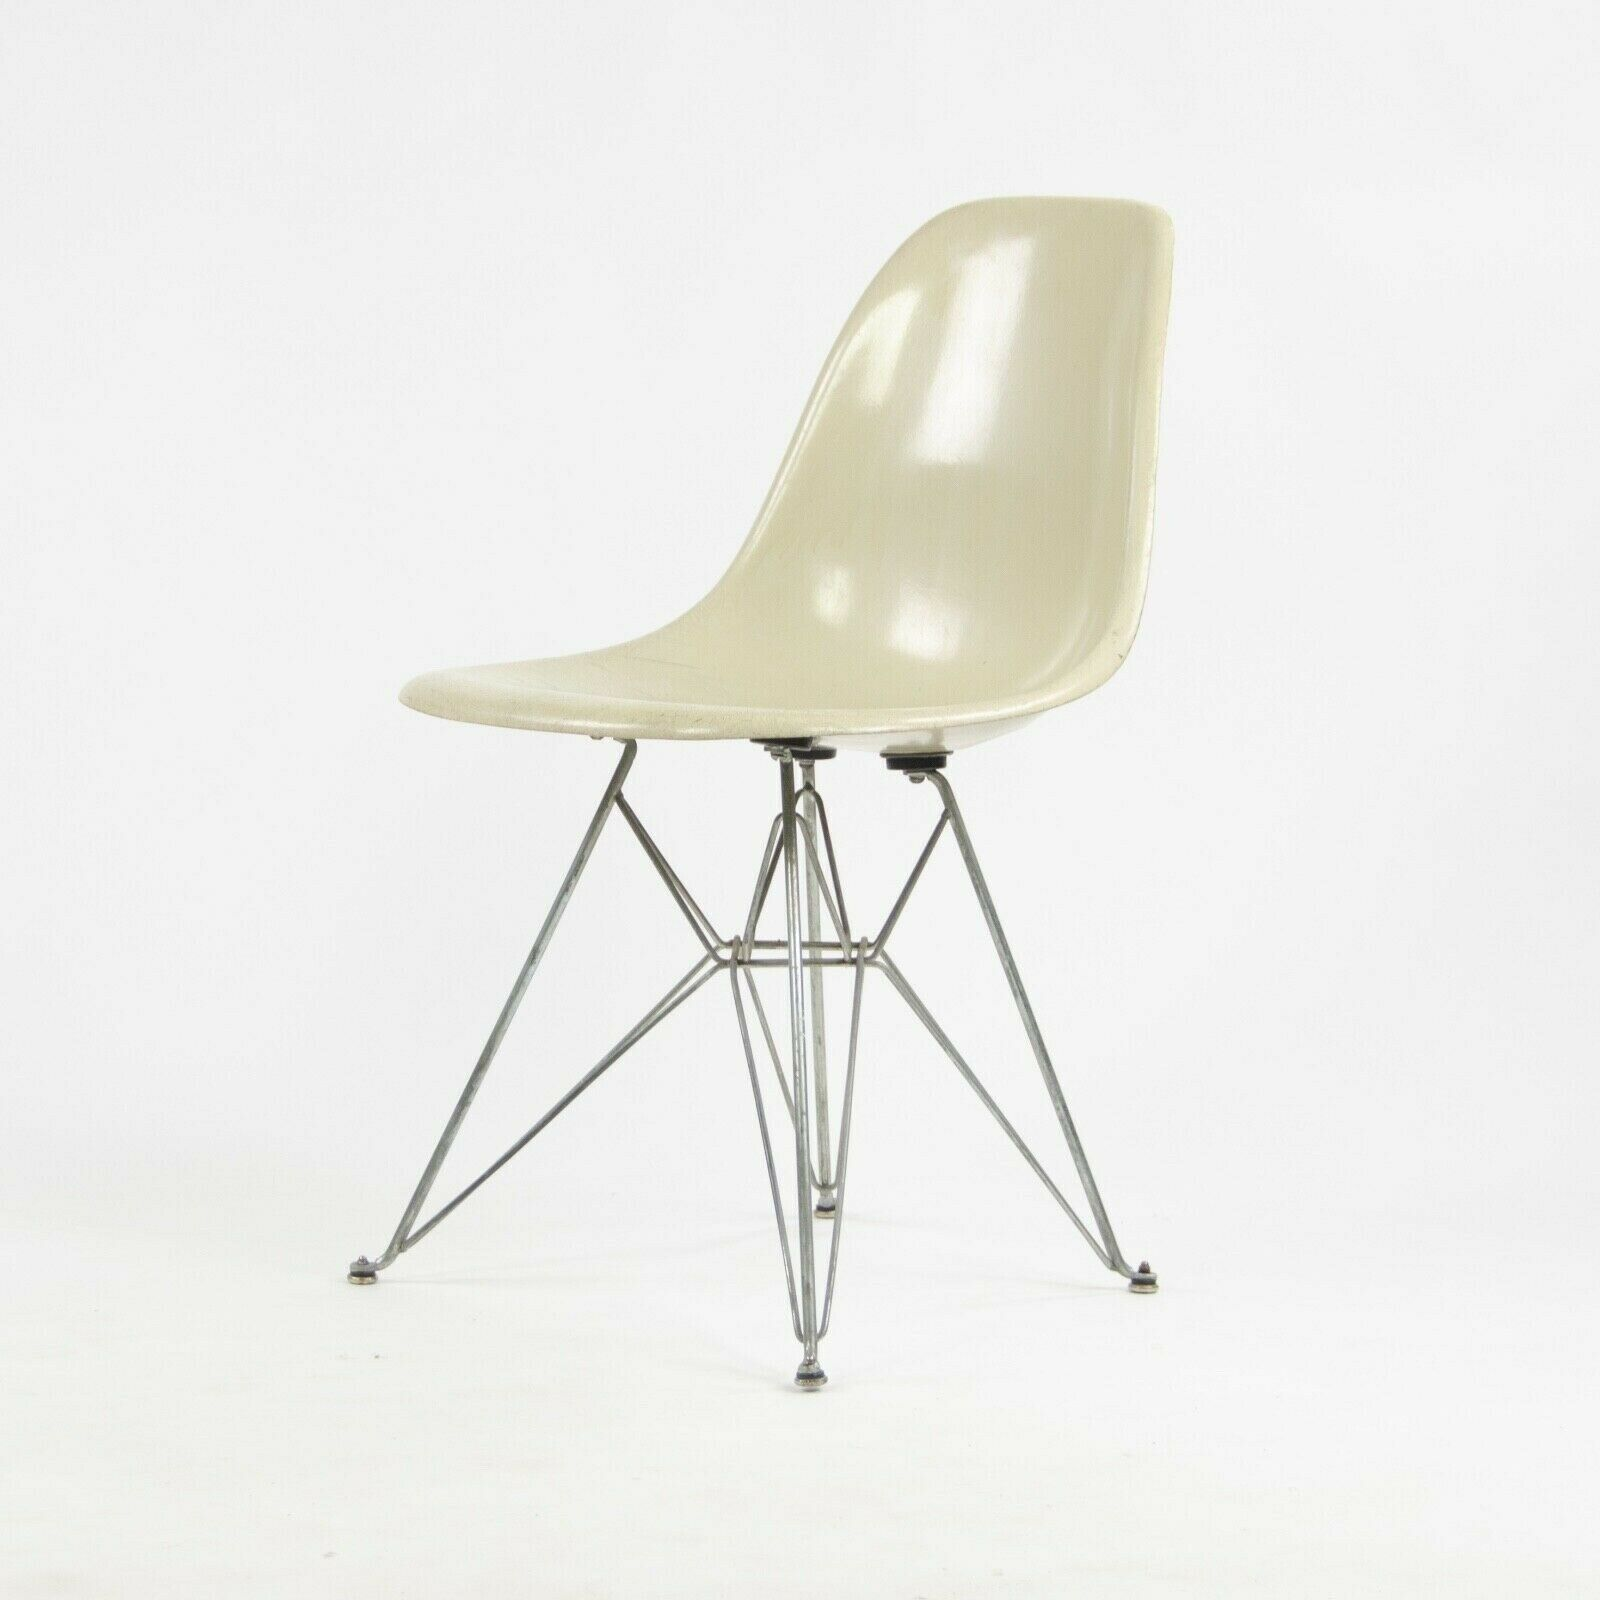 Eames Chair Herman Miller Ebay Details About 1951 Herman Miller Eames Fiberglass Side Shell Chair Ivory Eiffel Tower Base Dkr